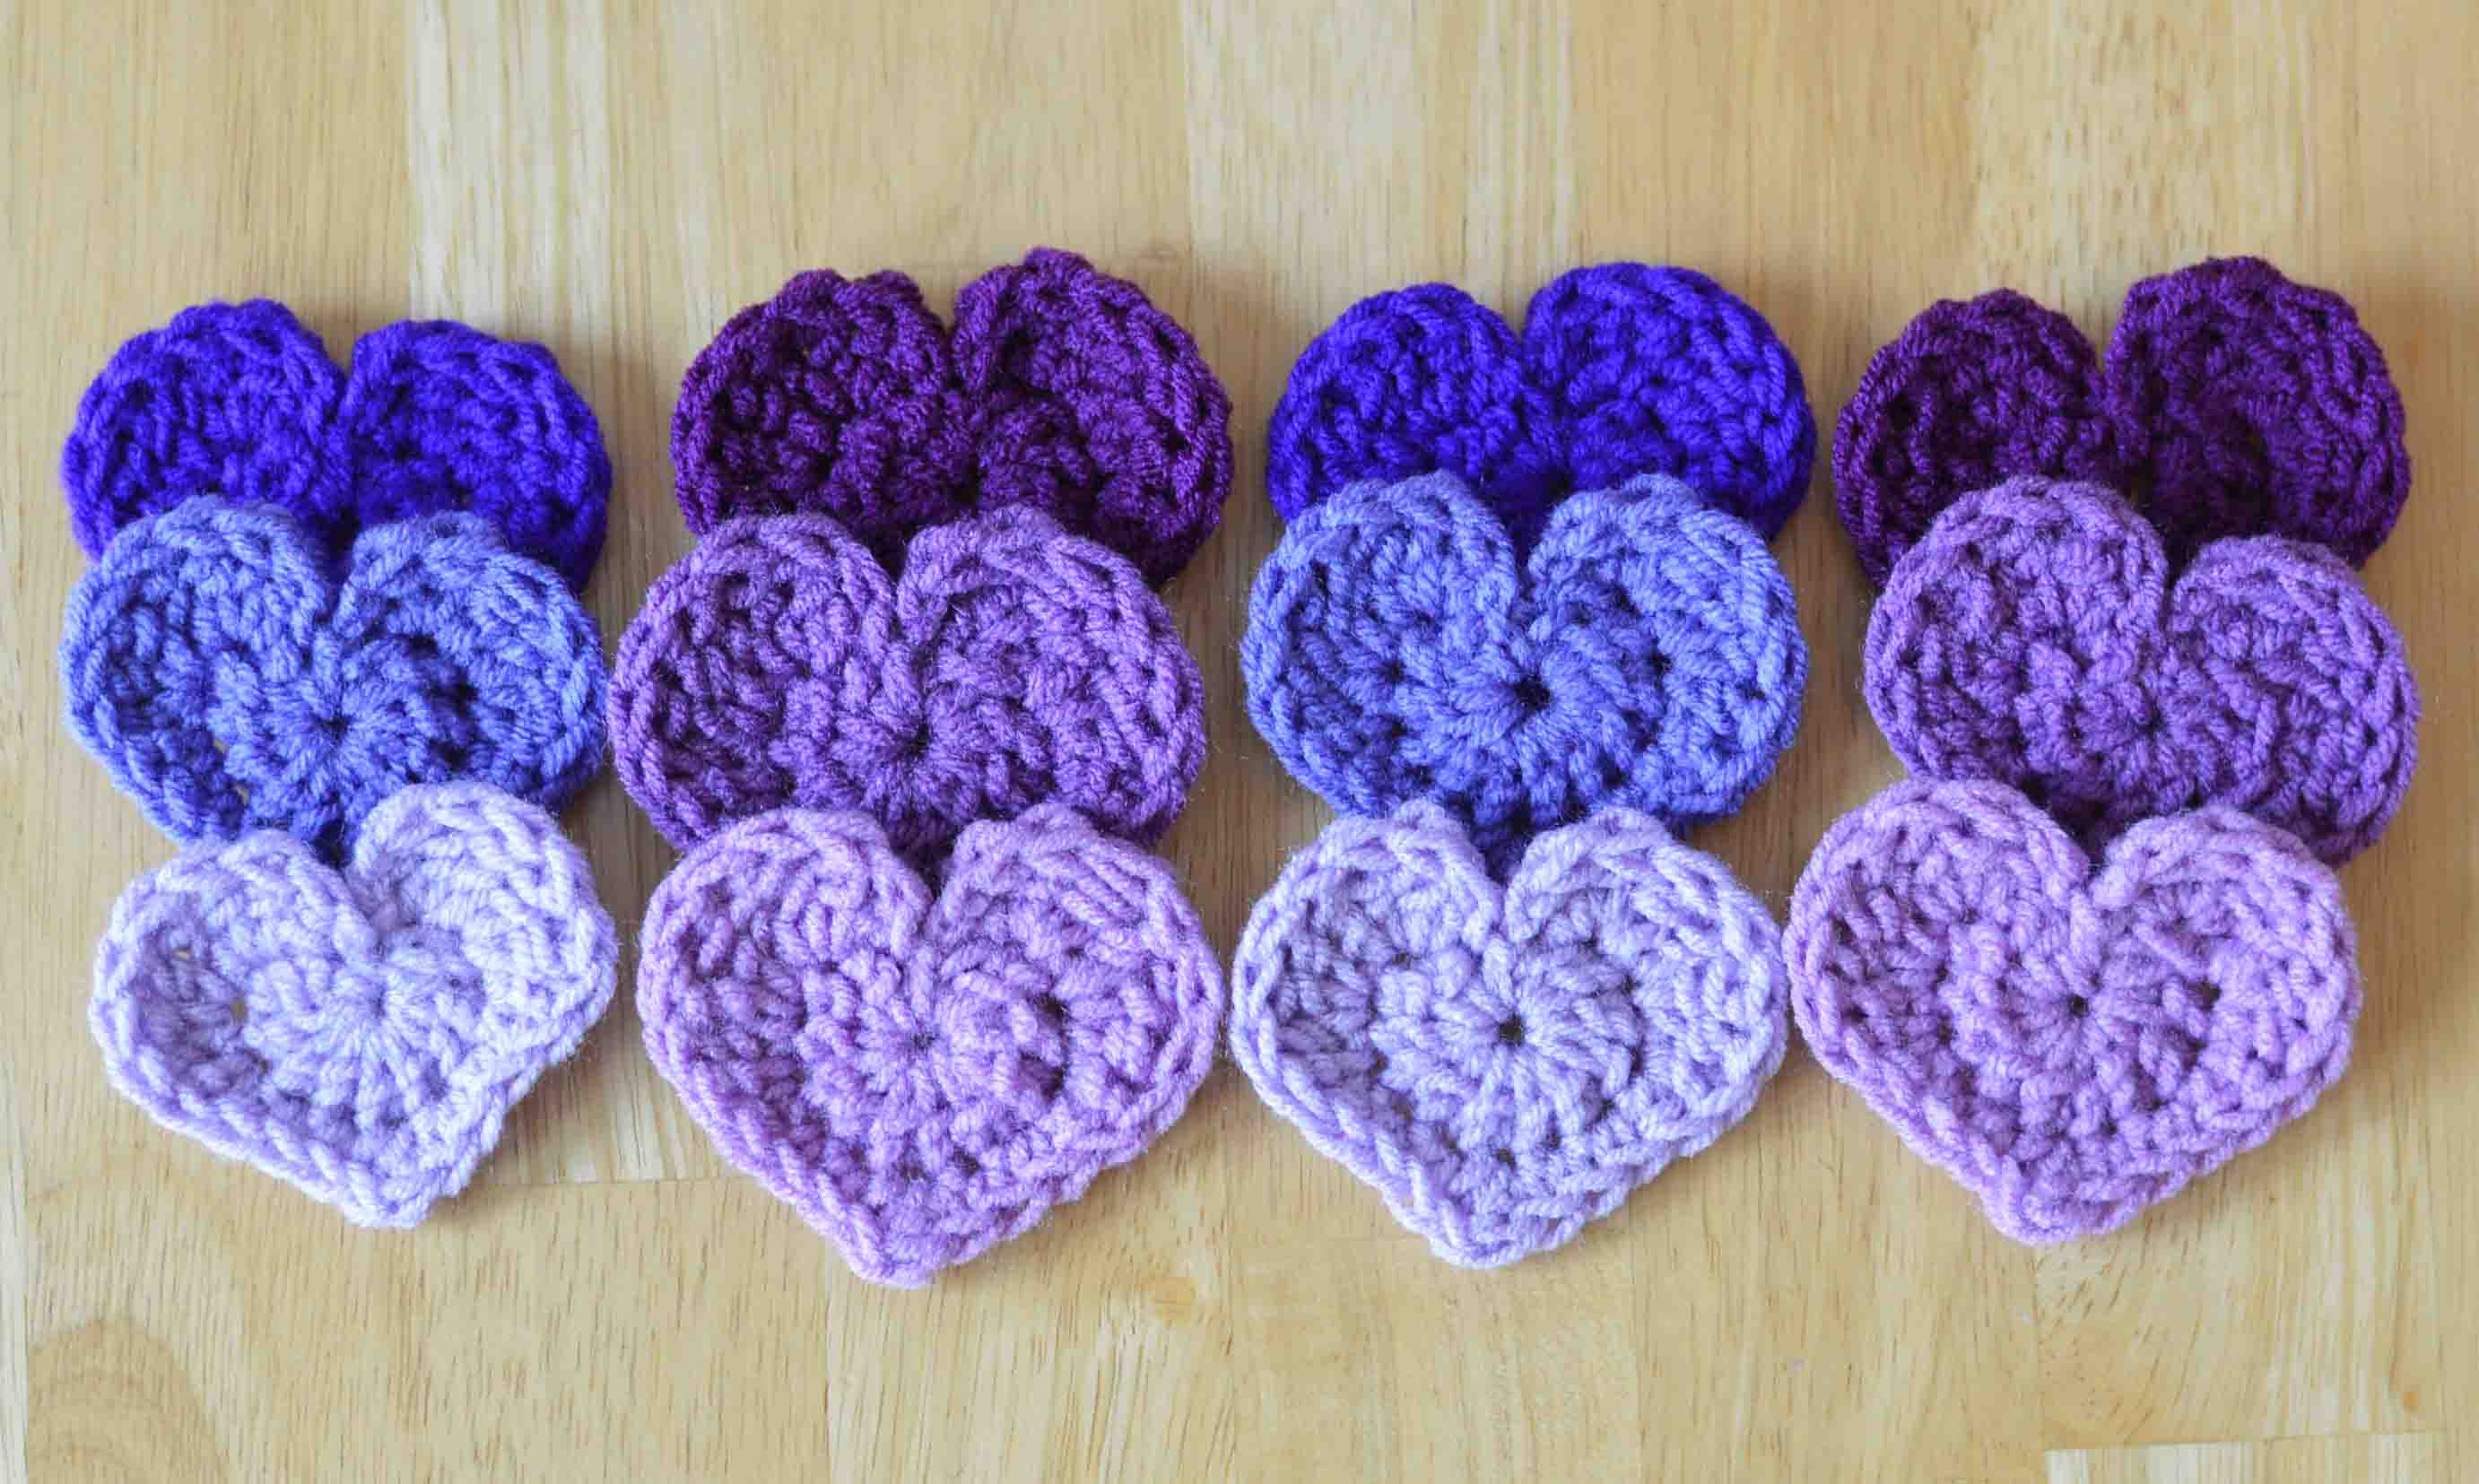 Free Crochet Heart Hat Pattern : Cute Little Heart Free Crochet Pattern